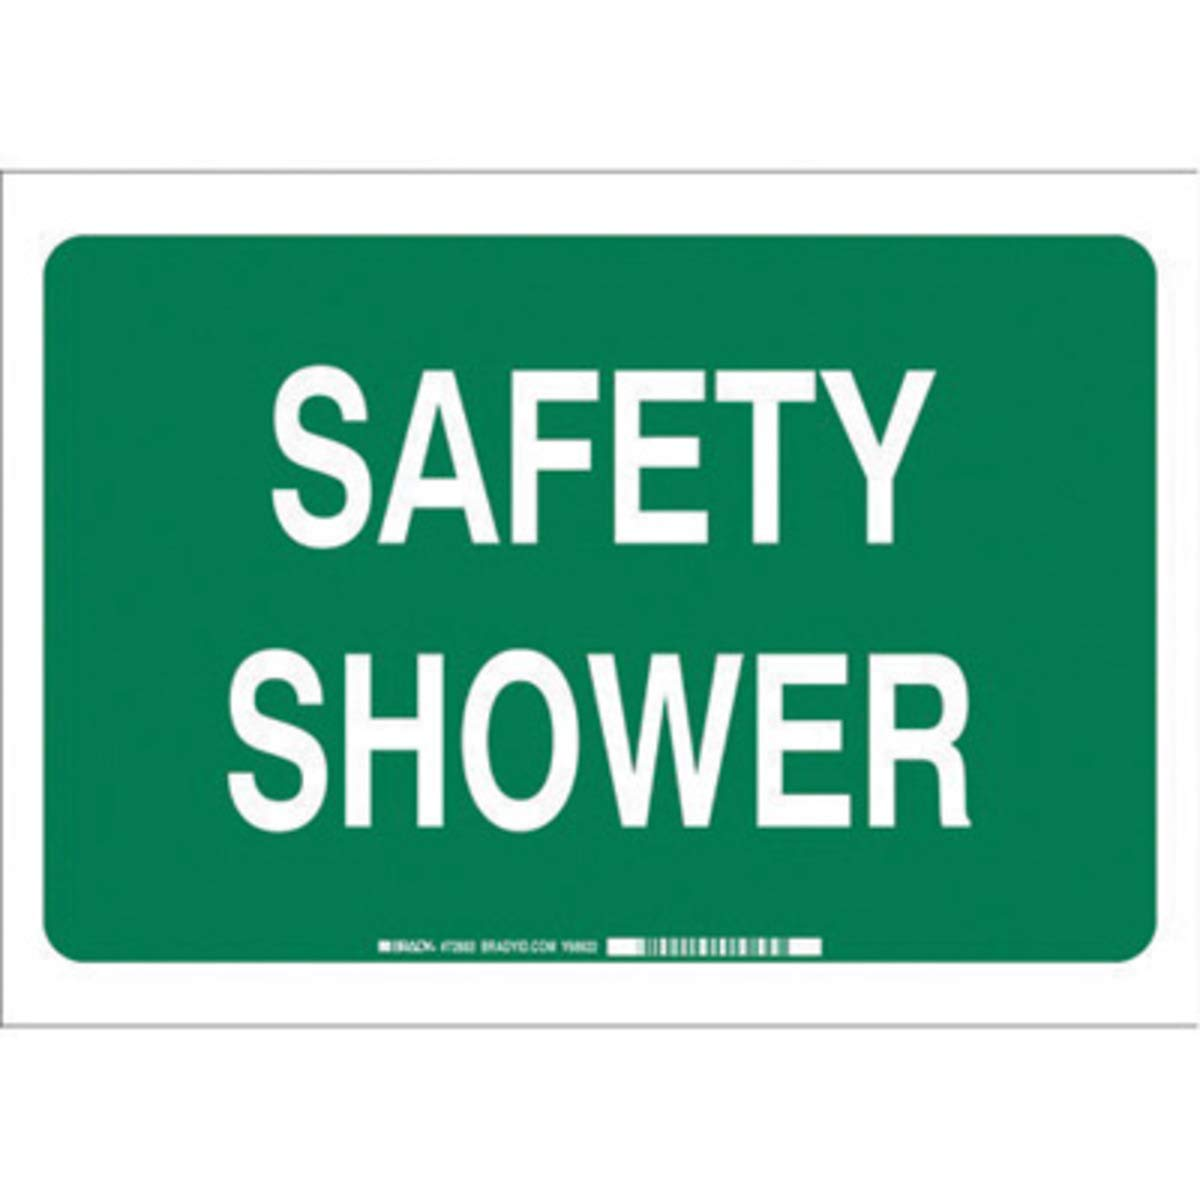 Brady 10'' X 14'' X 1/10'' White On Green .0984'' B-120 Fiberglass Safety Shower Sign''SAFETY SHOWER''